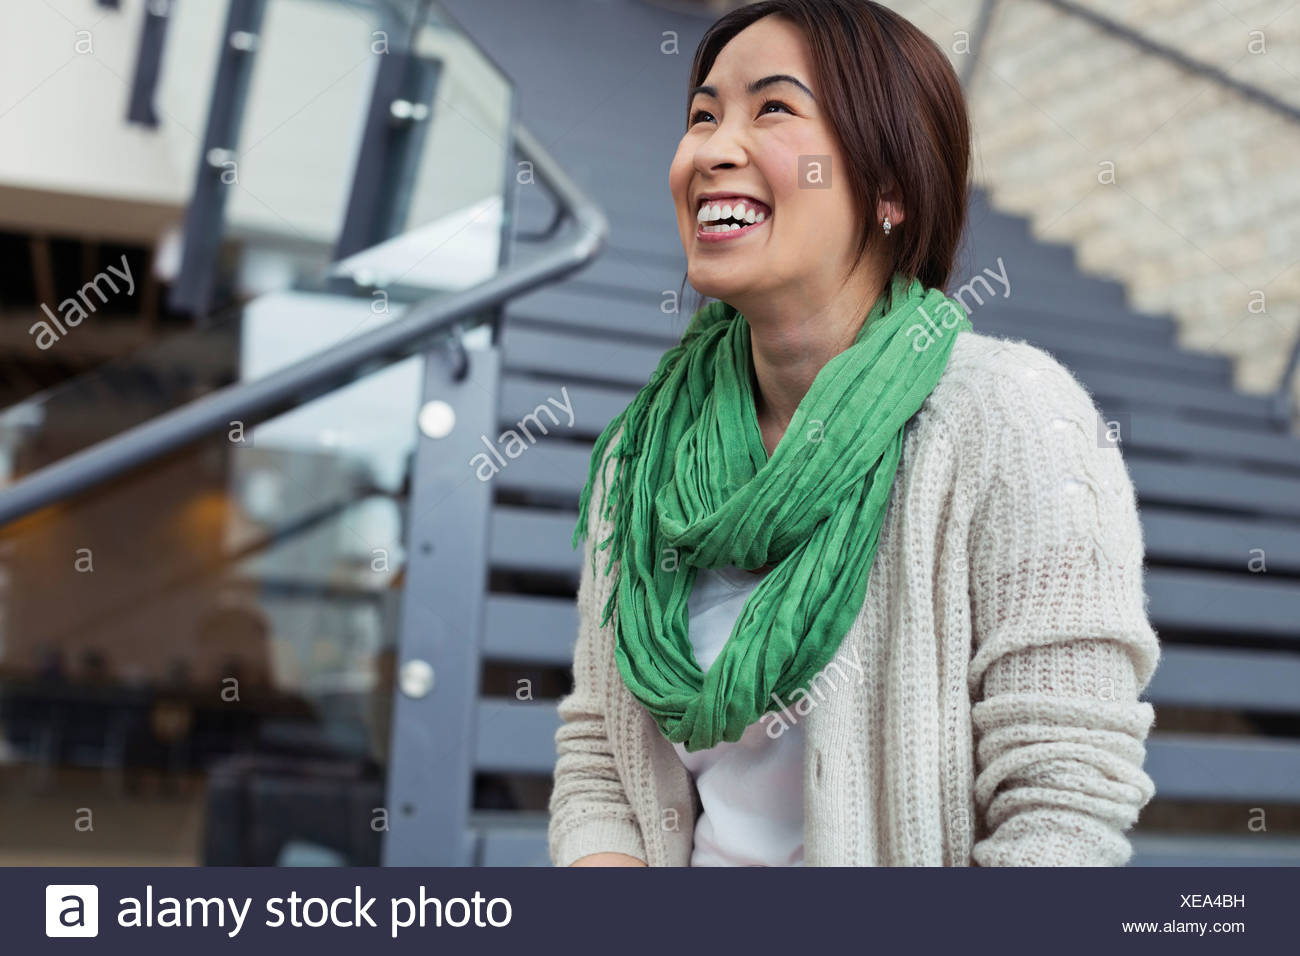 Female student sitting on staircase at college campus - Stock Image